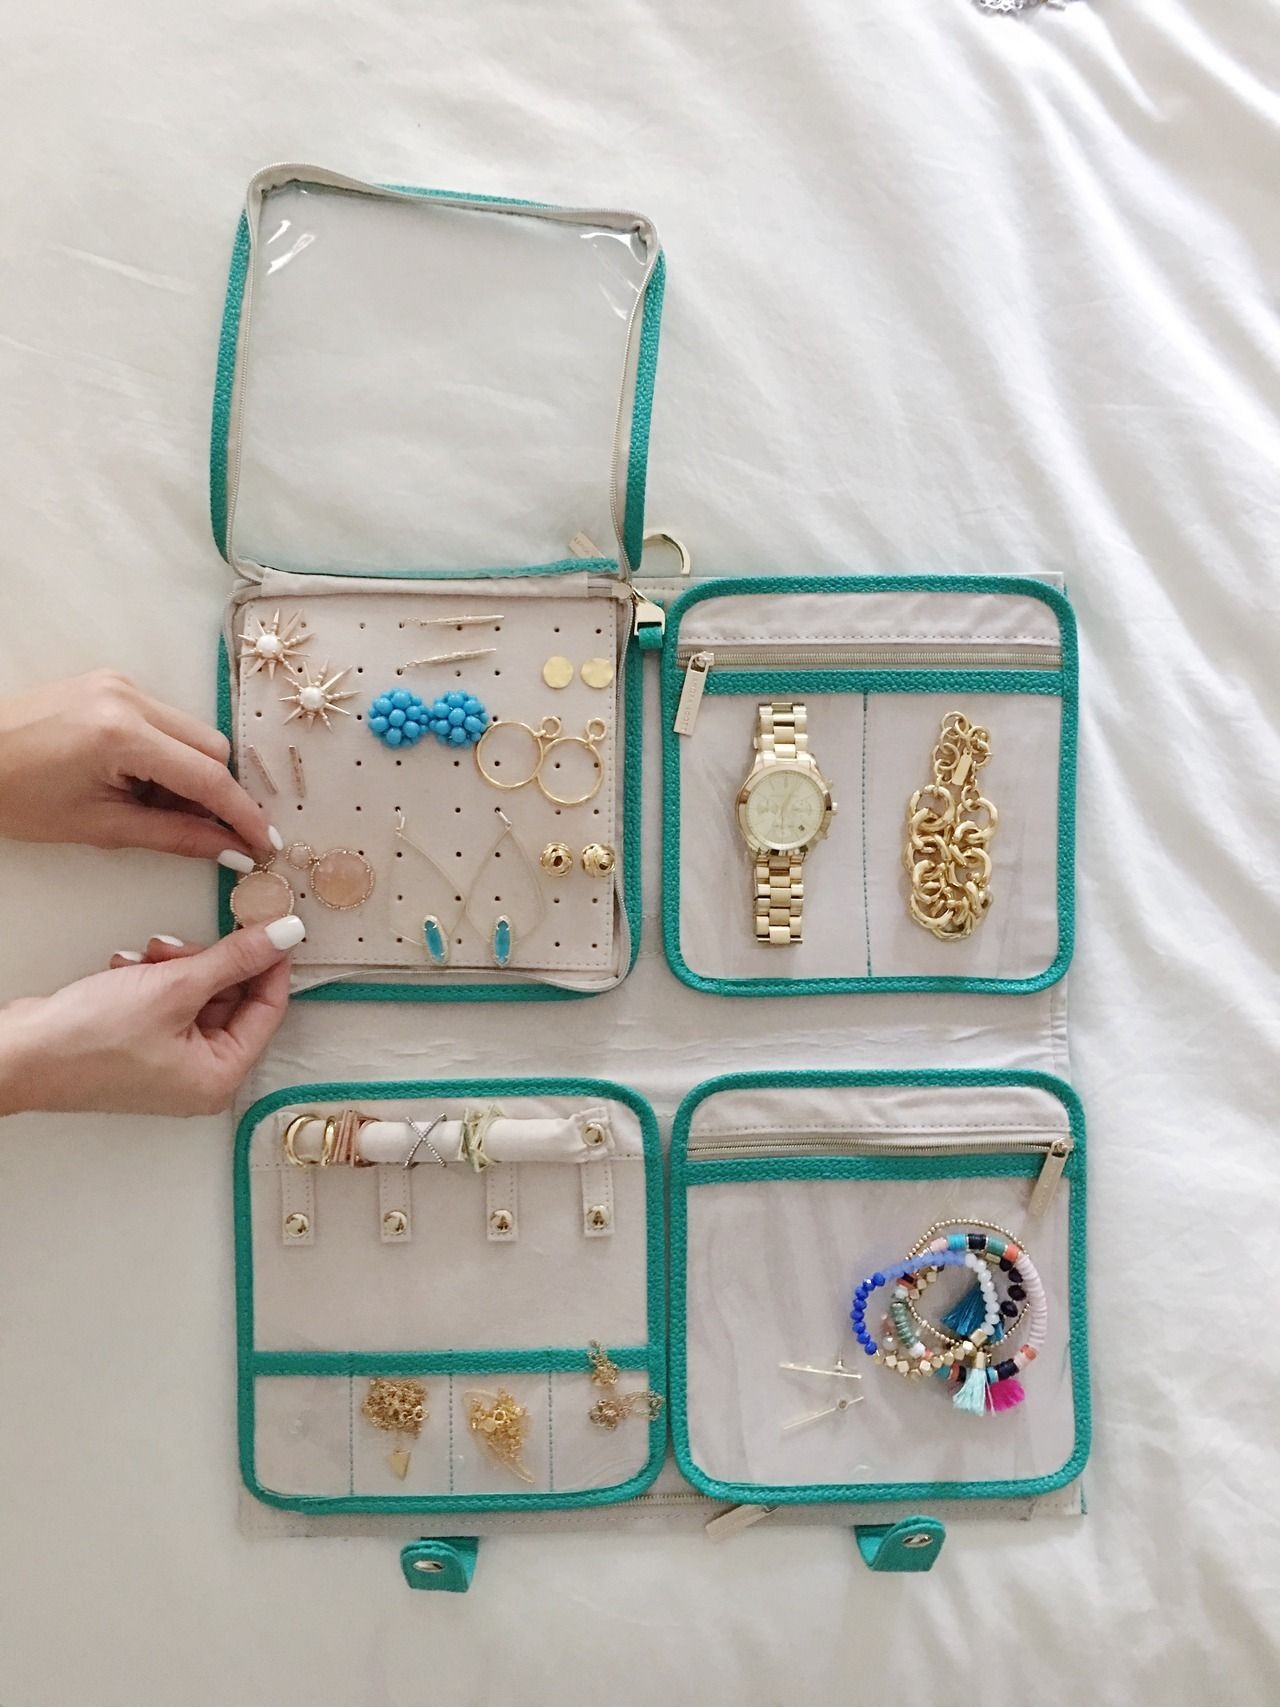 How To Pack Jewelry For Travel